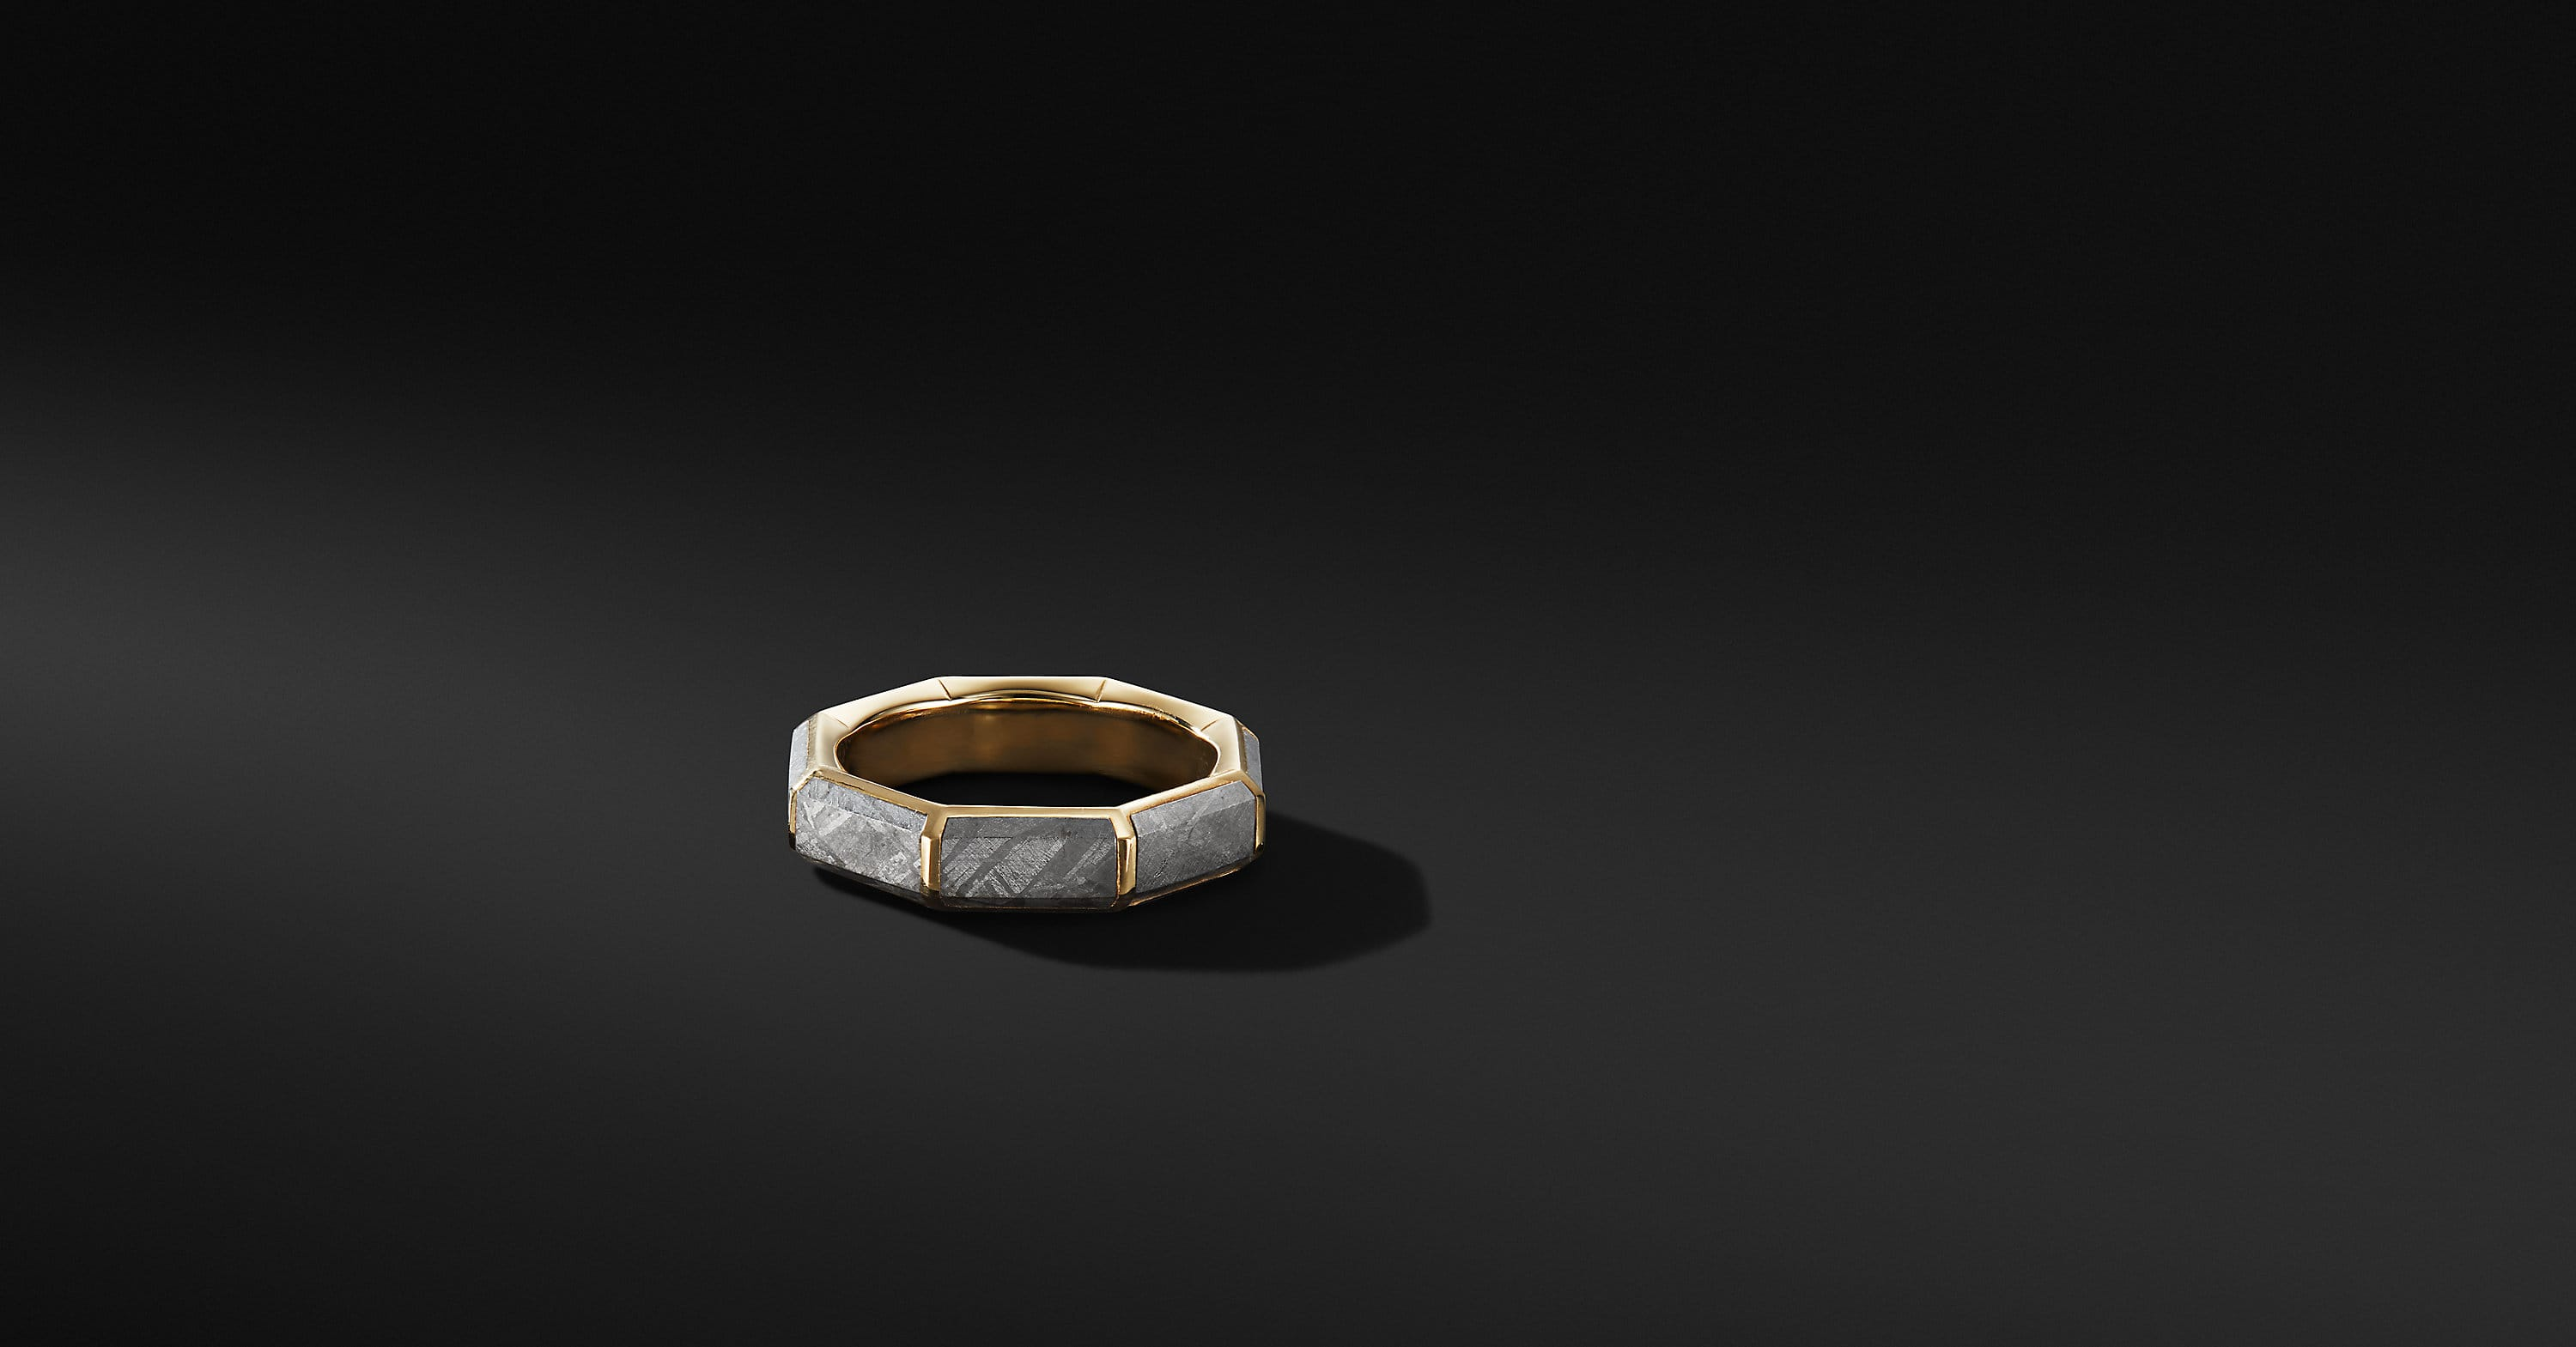 Faceted Band Ring with 18K Yellow Gold, 6mm